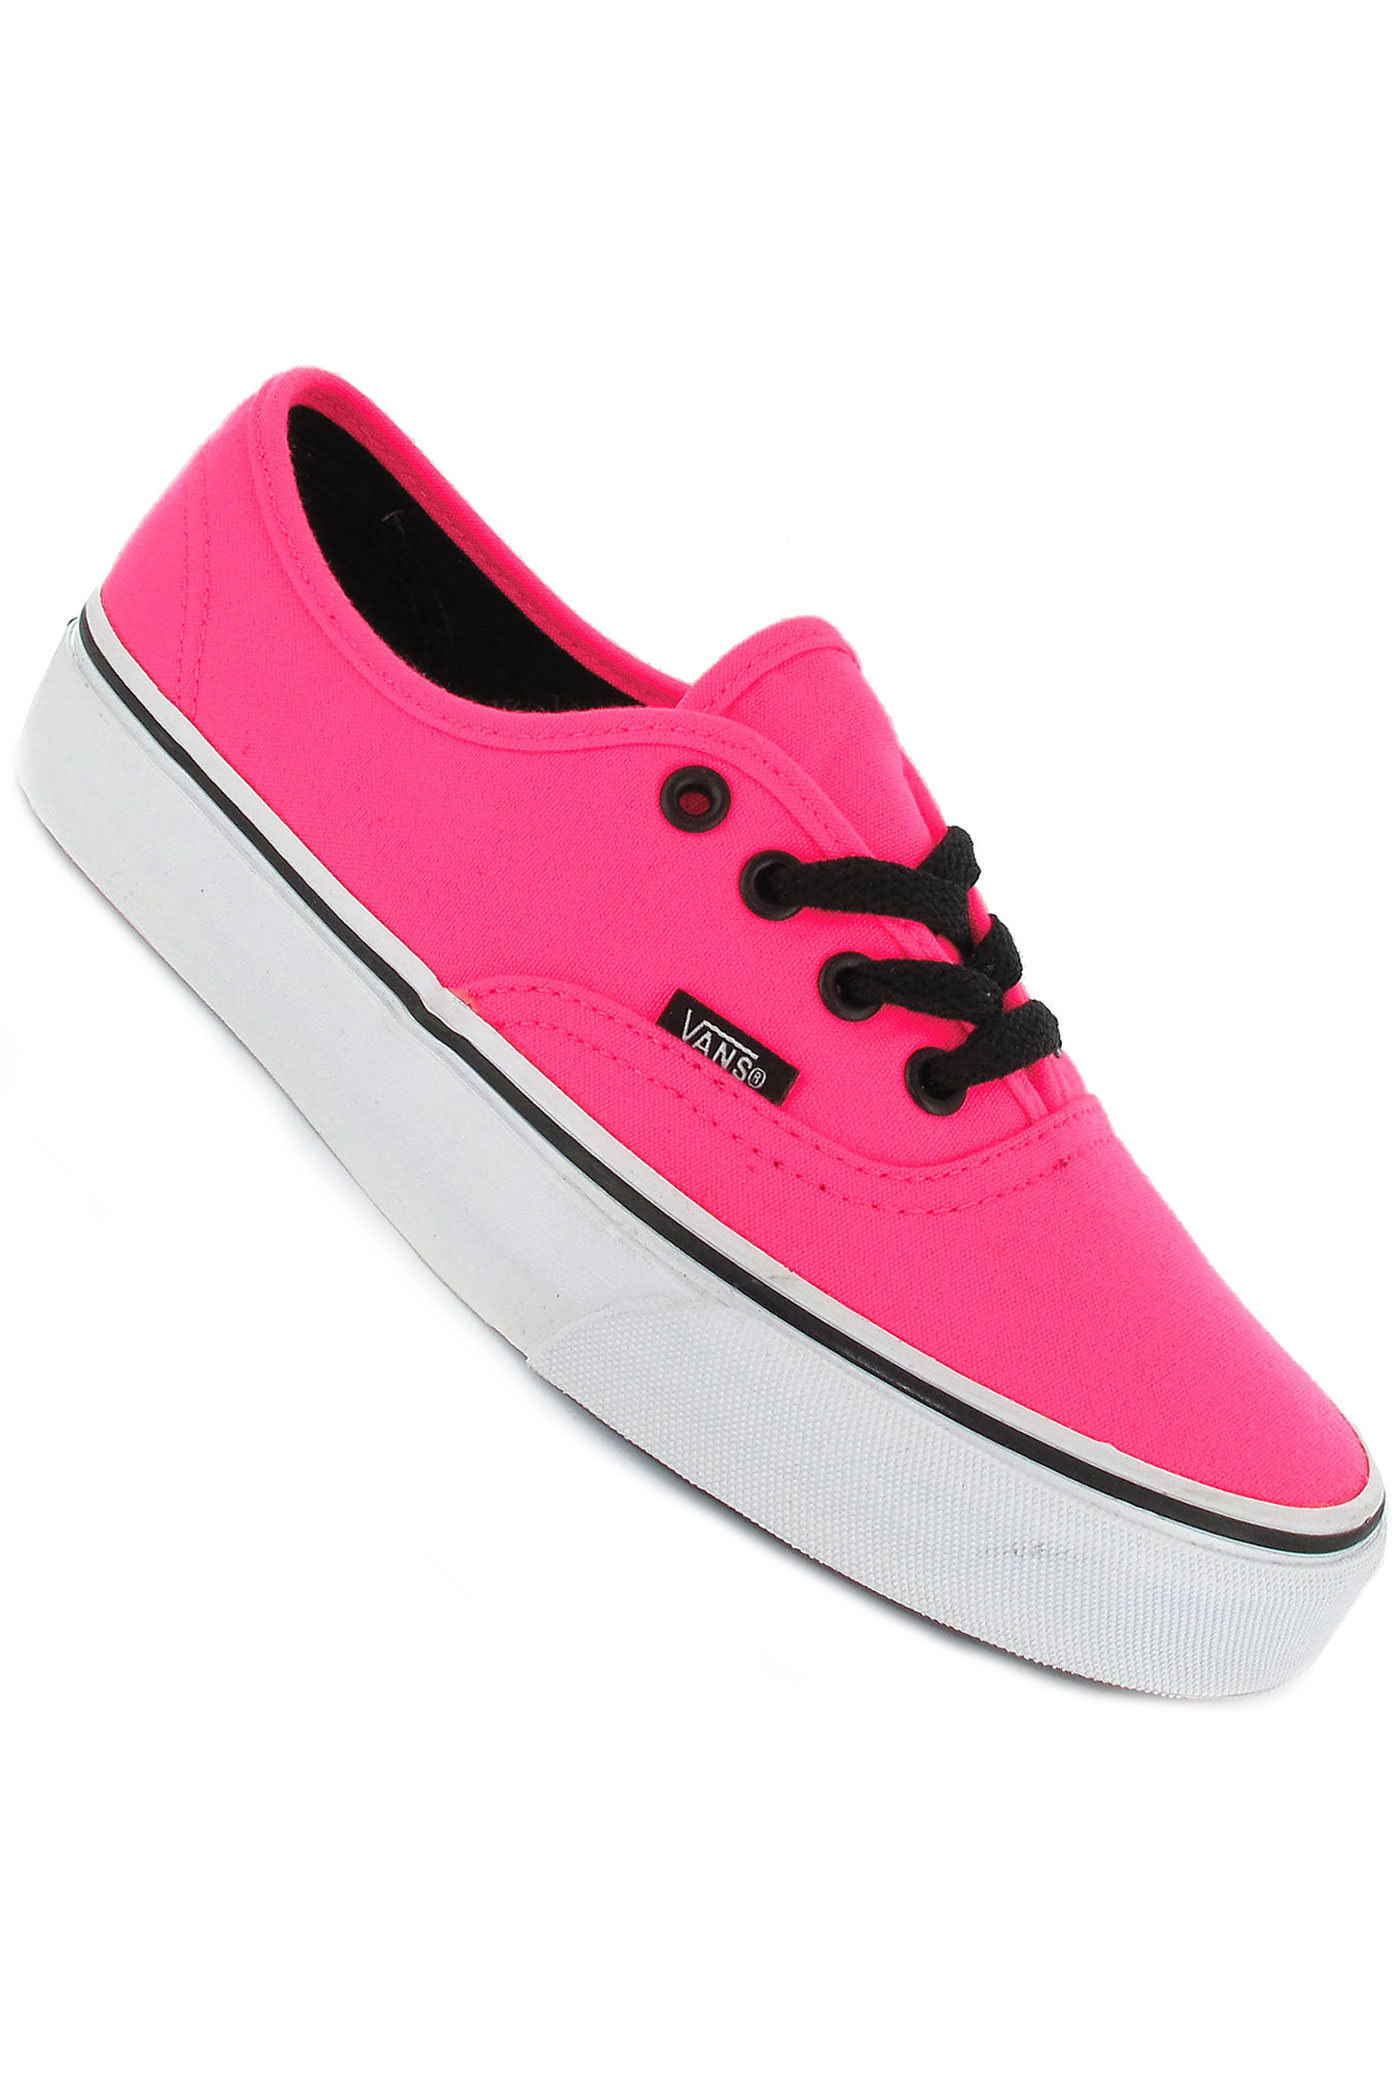 Innovative Vans Canvas Authentic Shoes In LollipopNeon Coral For Women